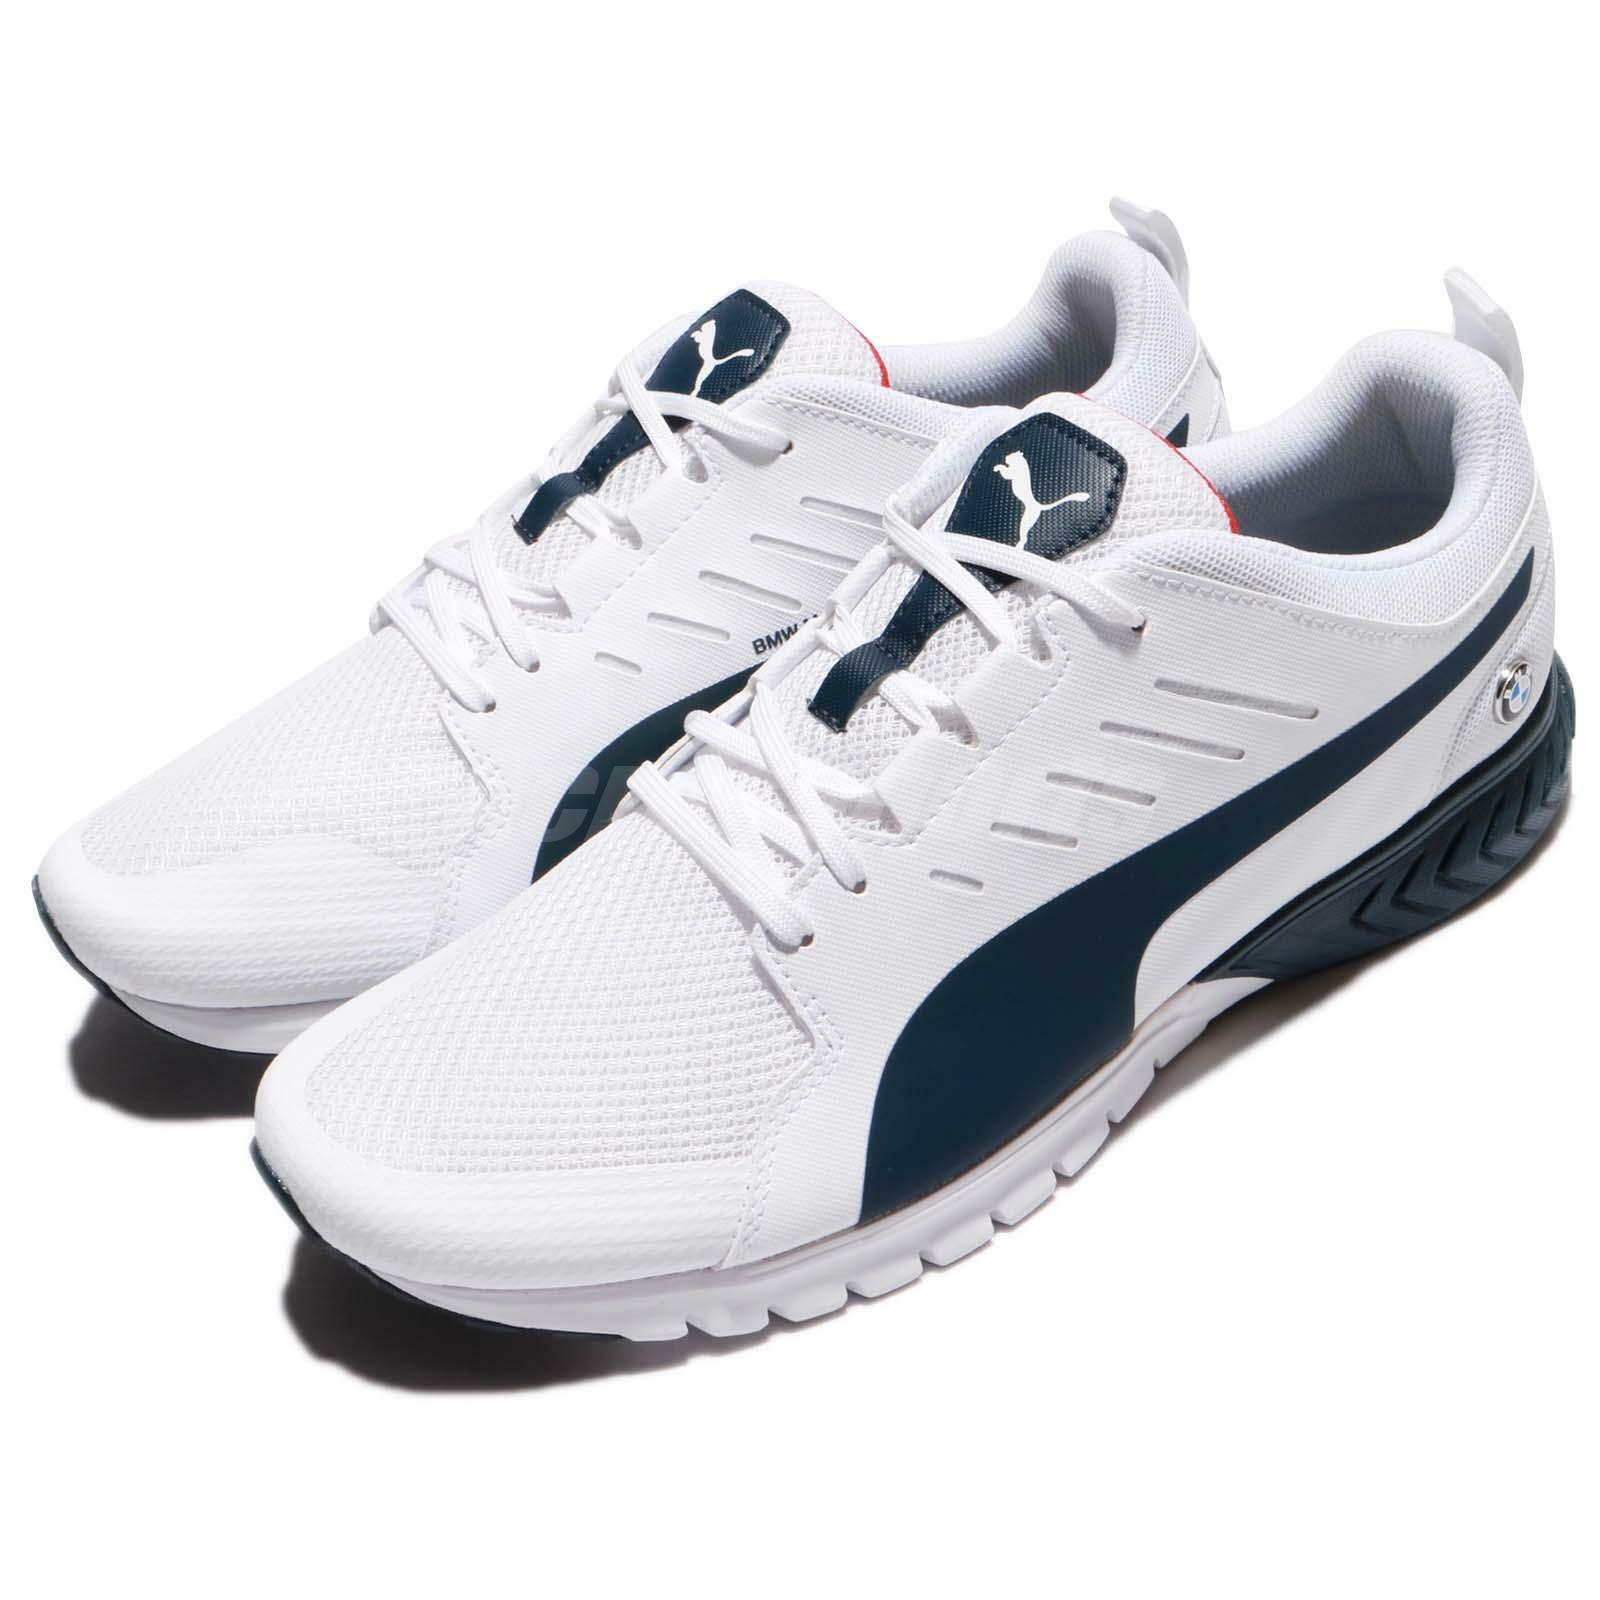 Puma BMW MS Pitlane White Team Blue uomo Shoes Sneakers Trainers 305991-02 Scarpe classiche da uomo